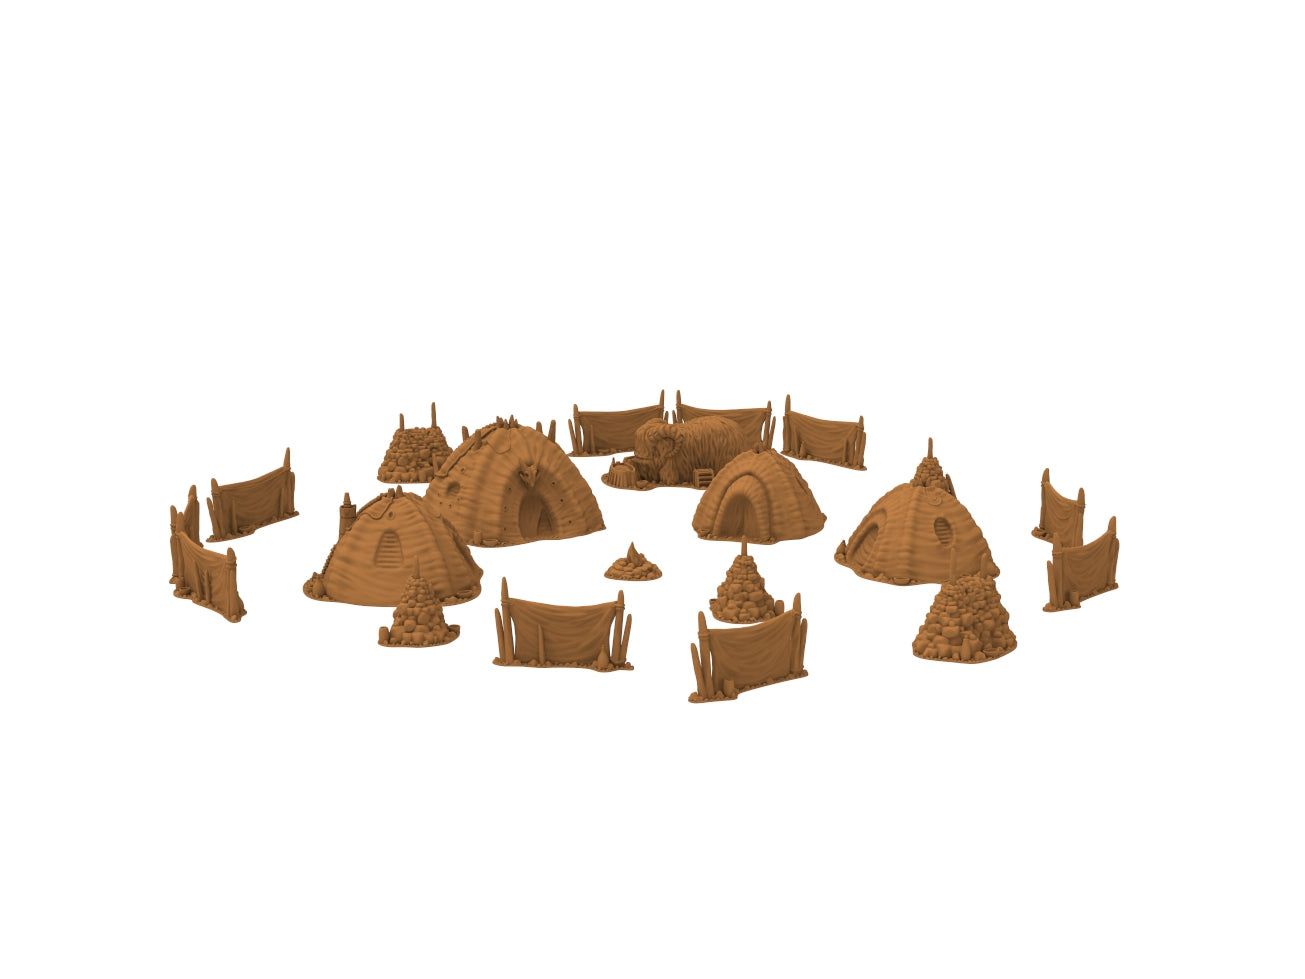 Desert Camp Set by Jesús - Digital STL Files